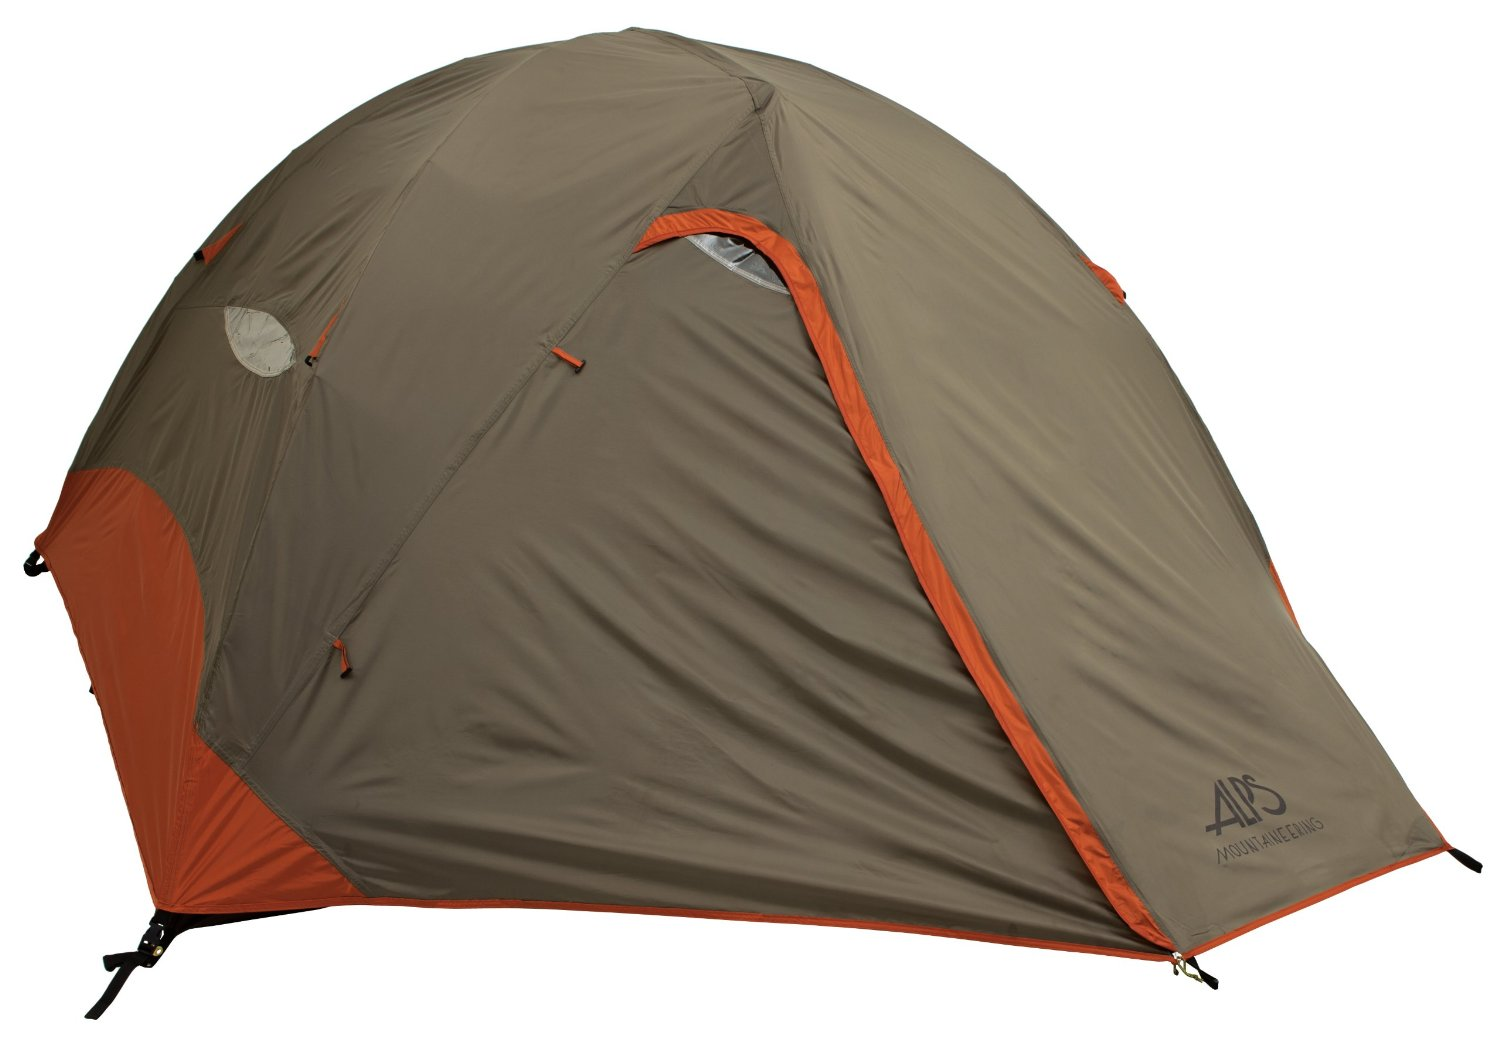 They are rainproof.  sc 1 st  The C&ing Family & Four Season Tents: For Extreme Camping